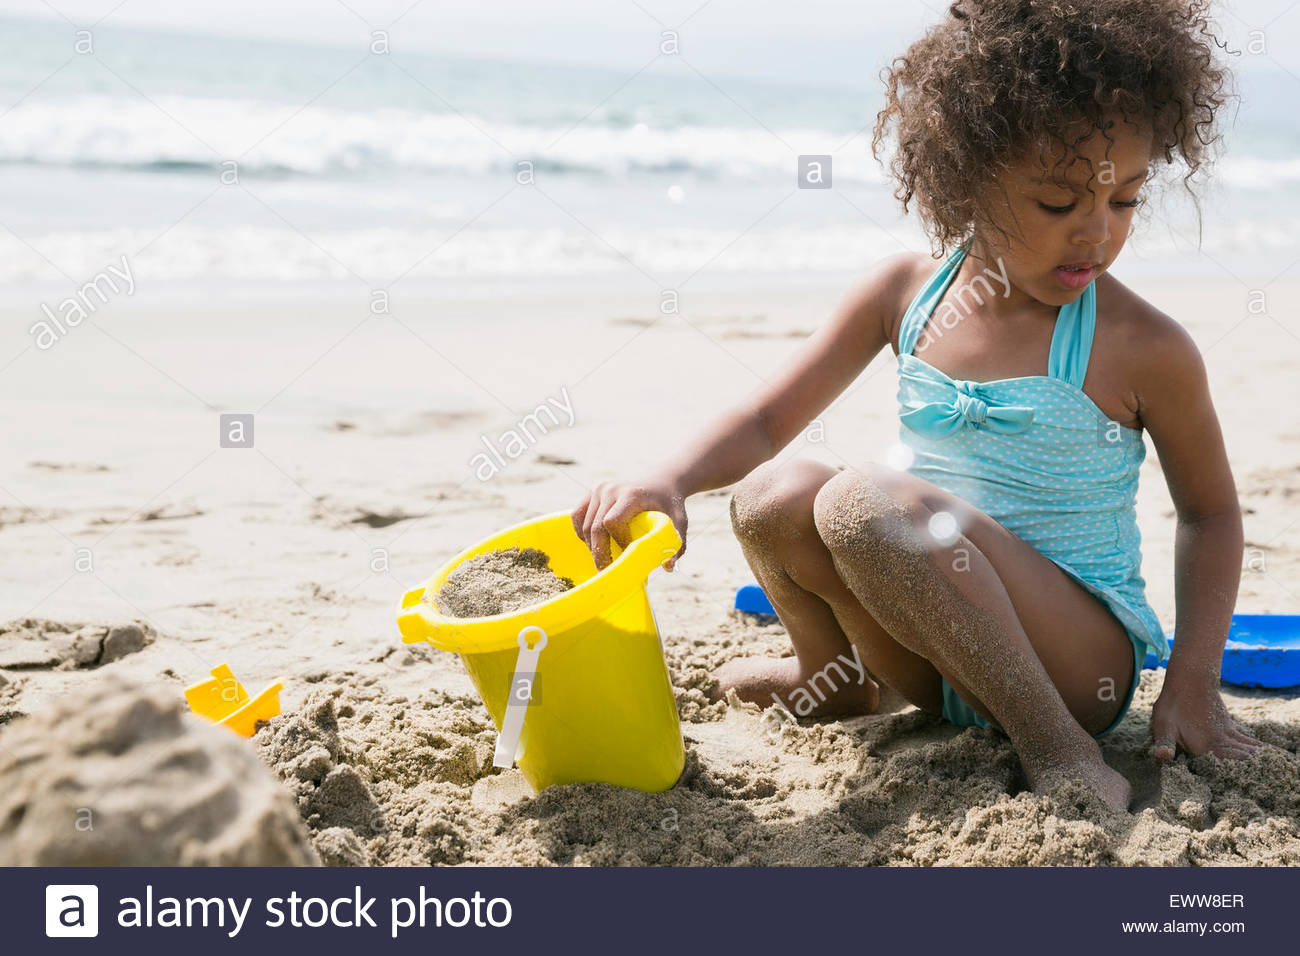 6f615b88430 Girl in bathing suit making sandcastle on beach - Stock Image